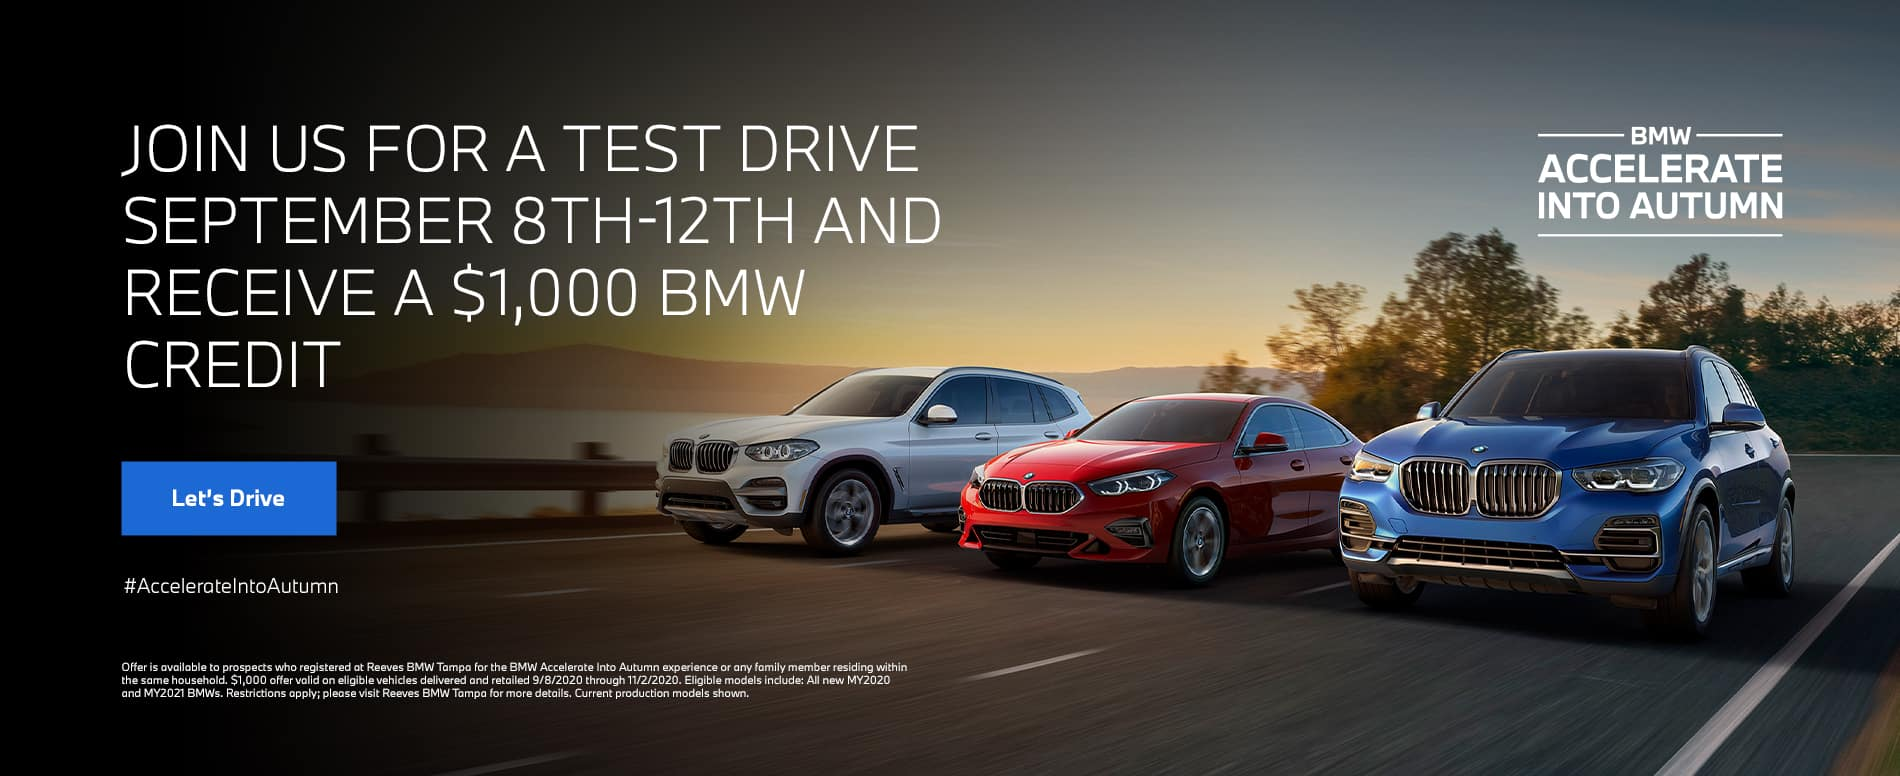 BMW Accelerate into Autumn